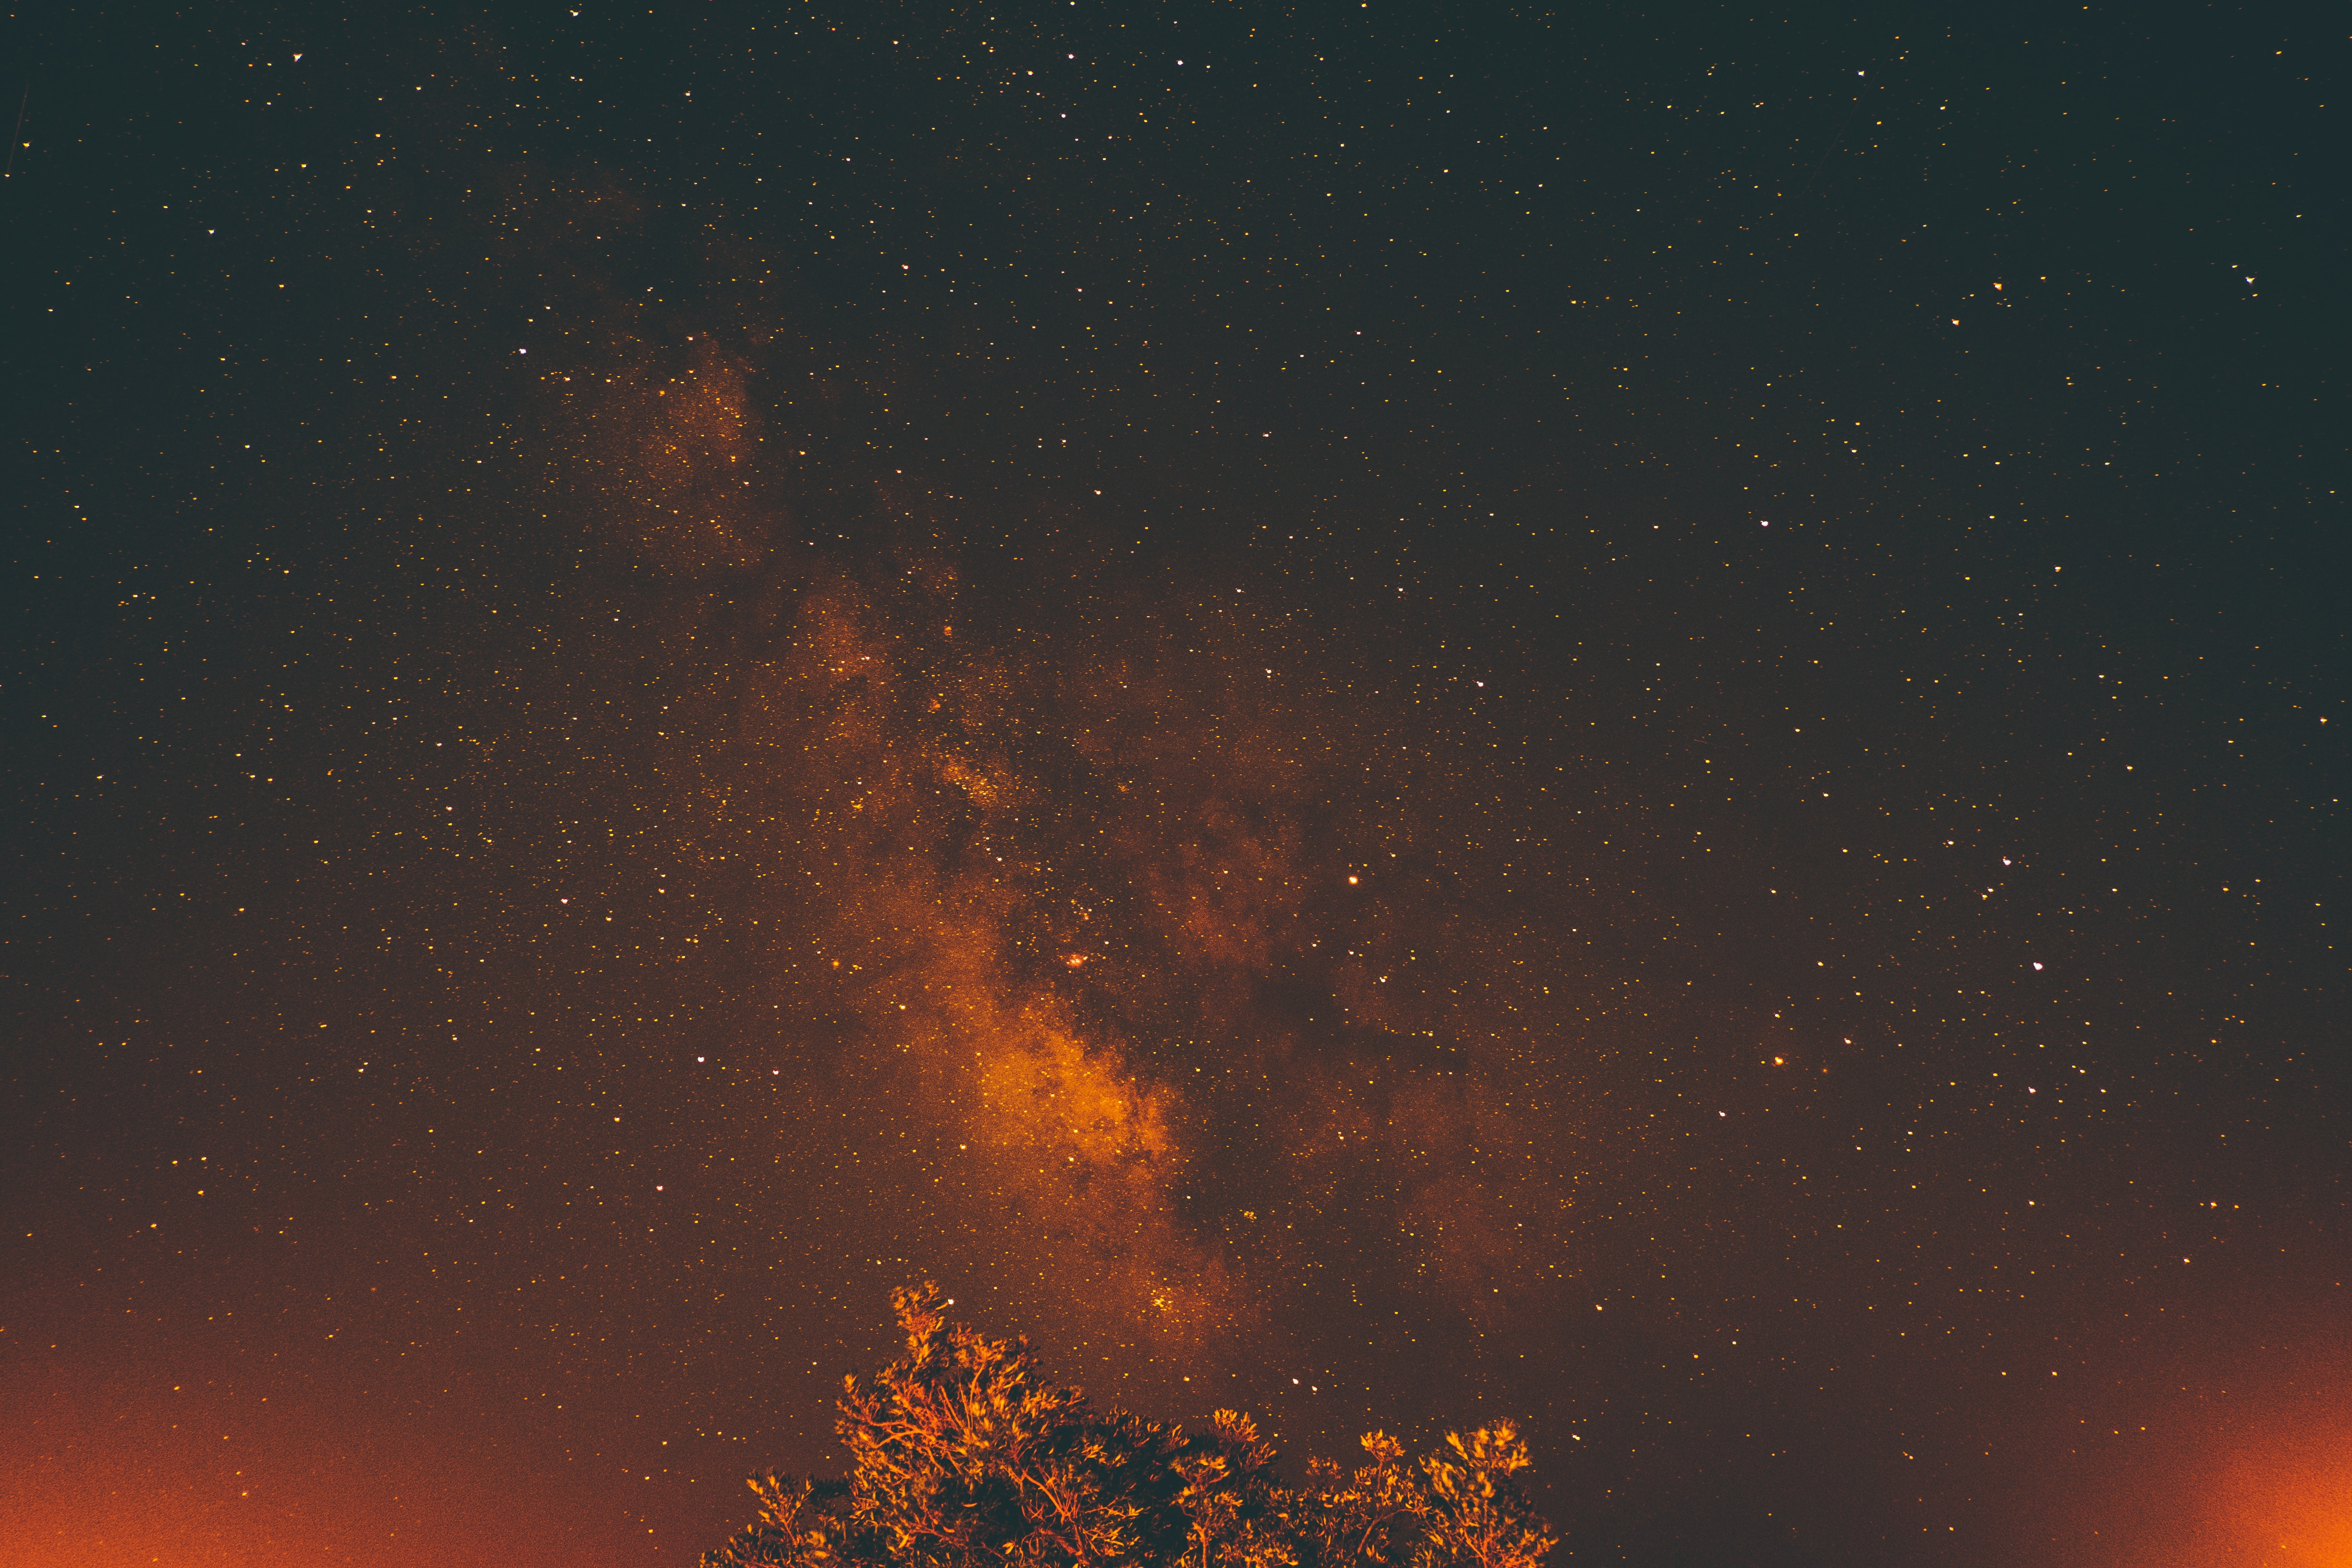 The milky way and night sky with an orange hue